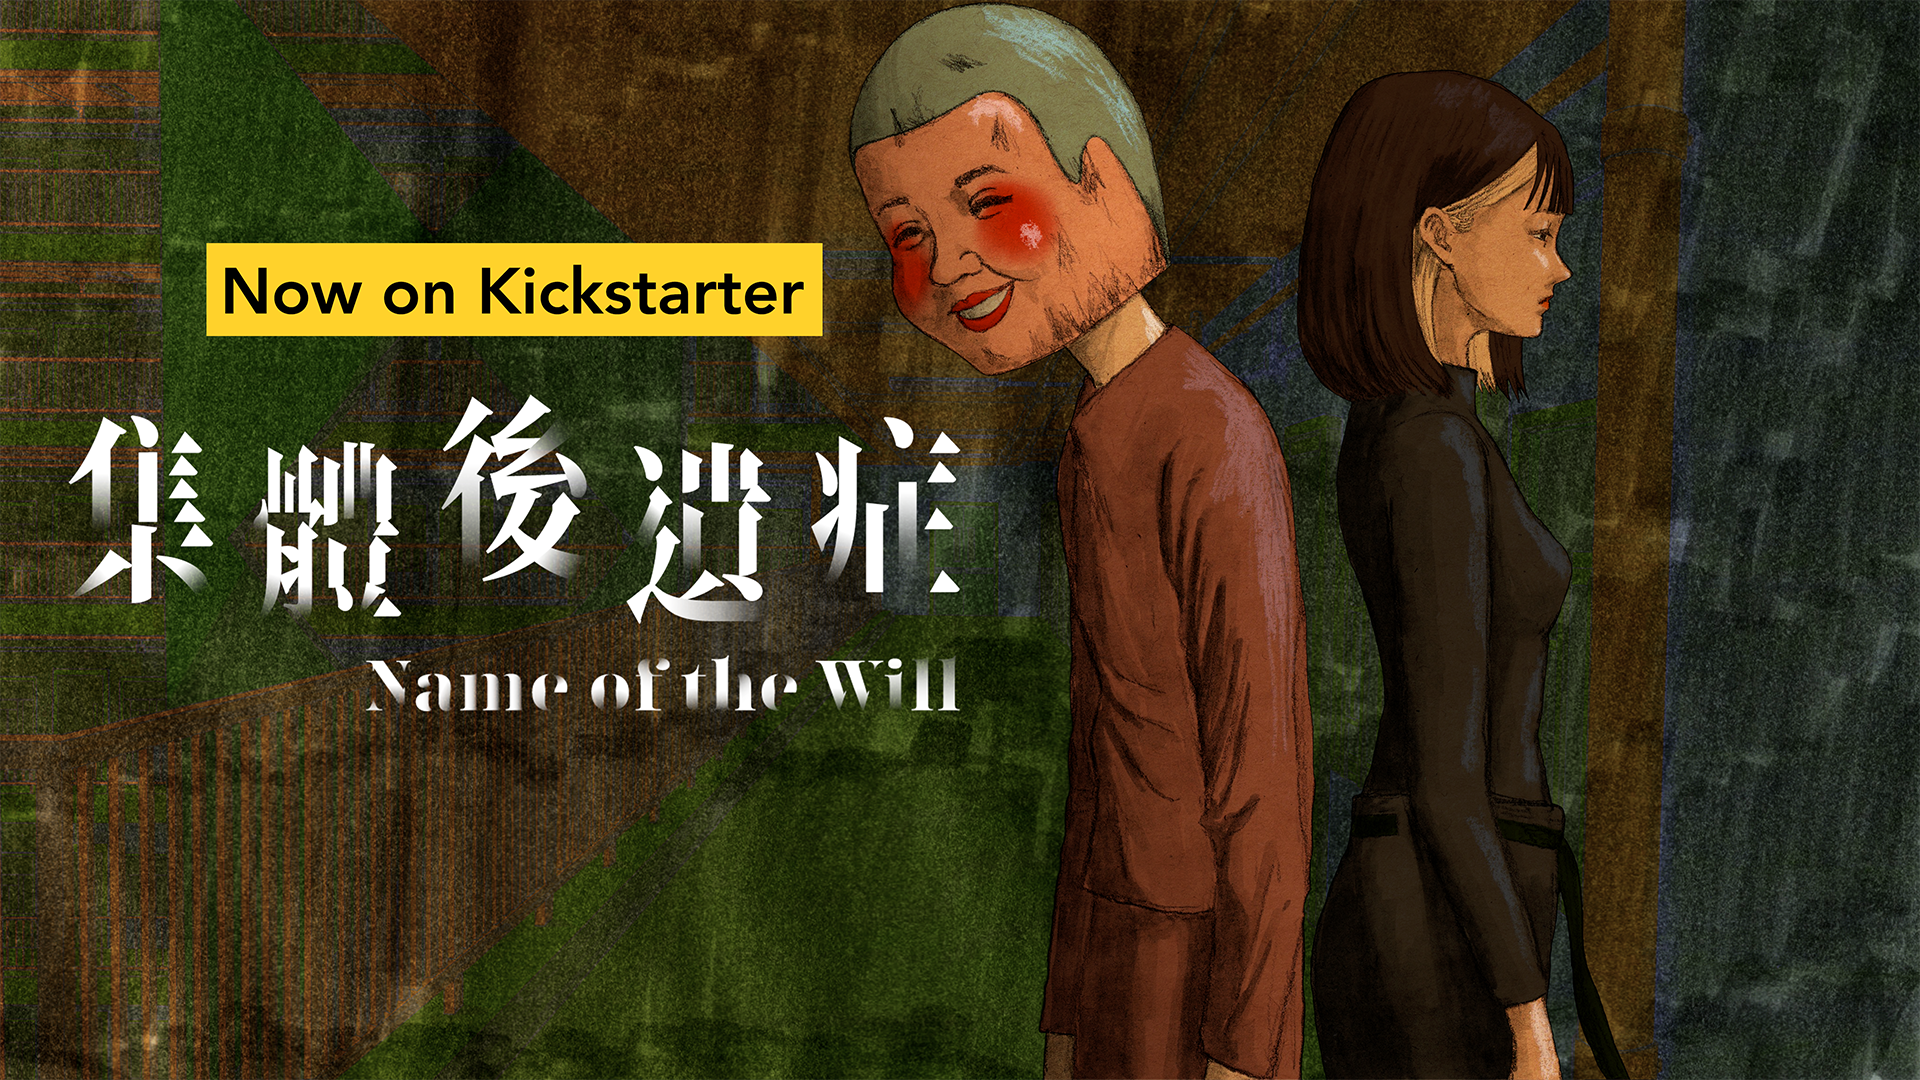 Kickstarter Project of the Week: Name of the Will